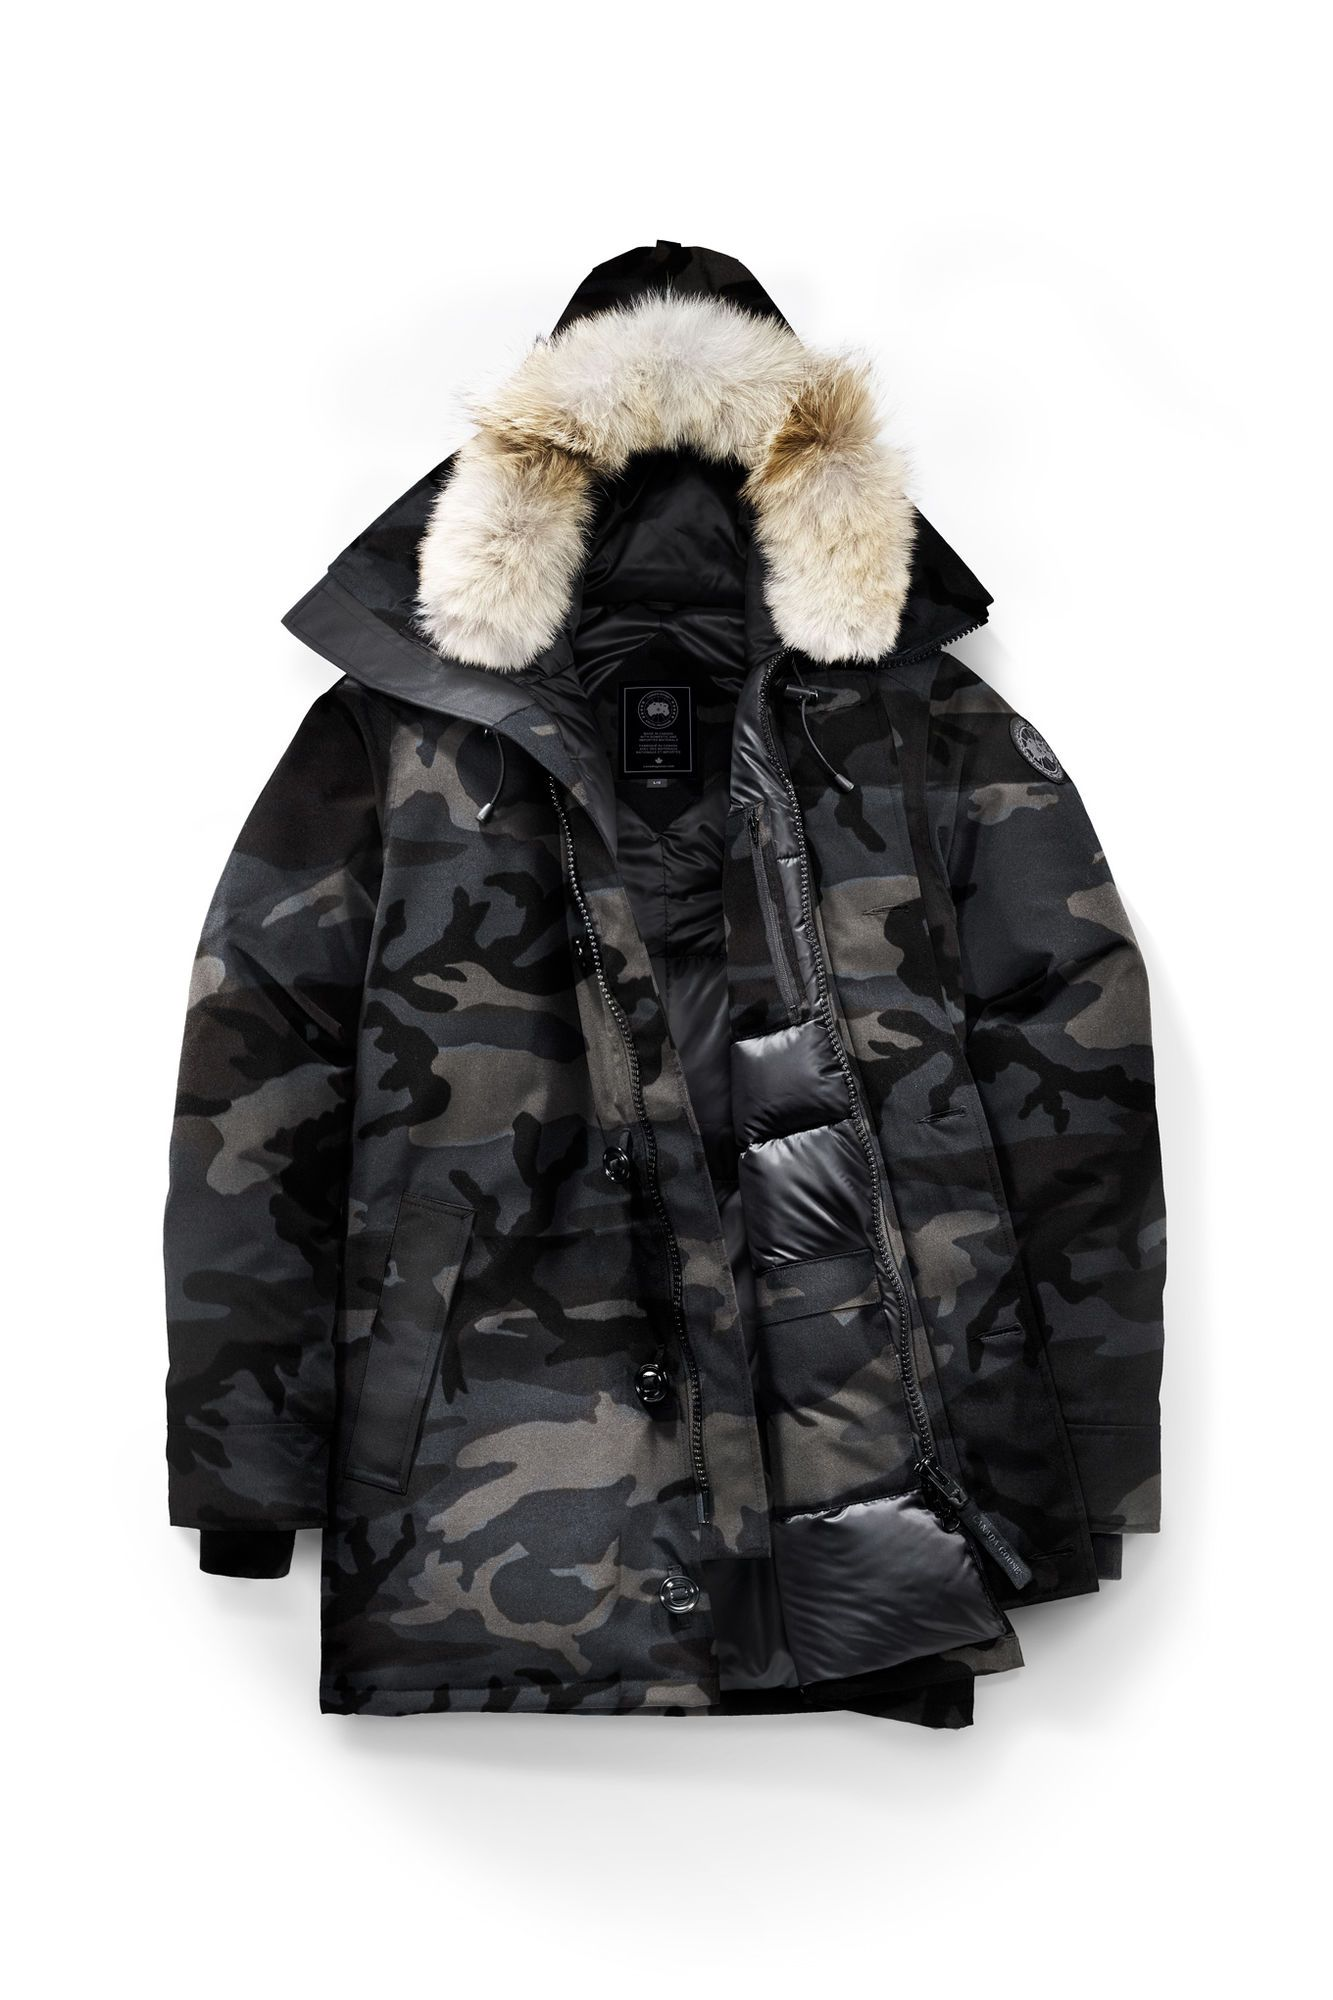 65d6f21012a7 Chateau Parka Black Label in 2019